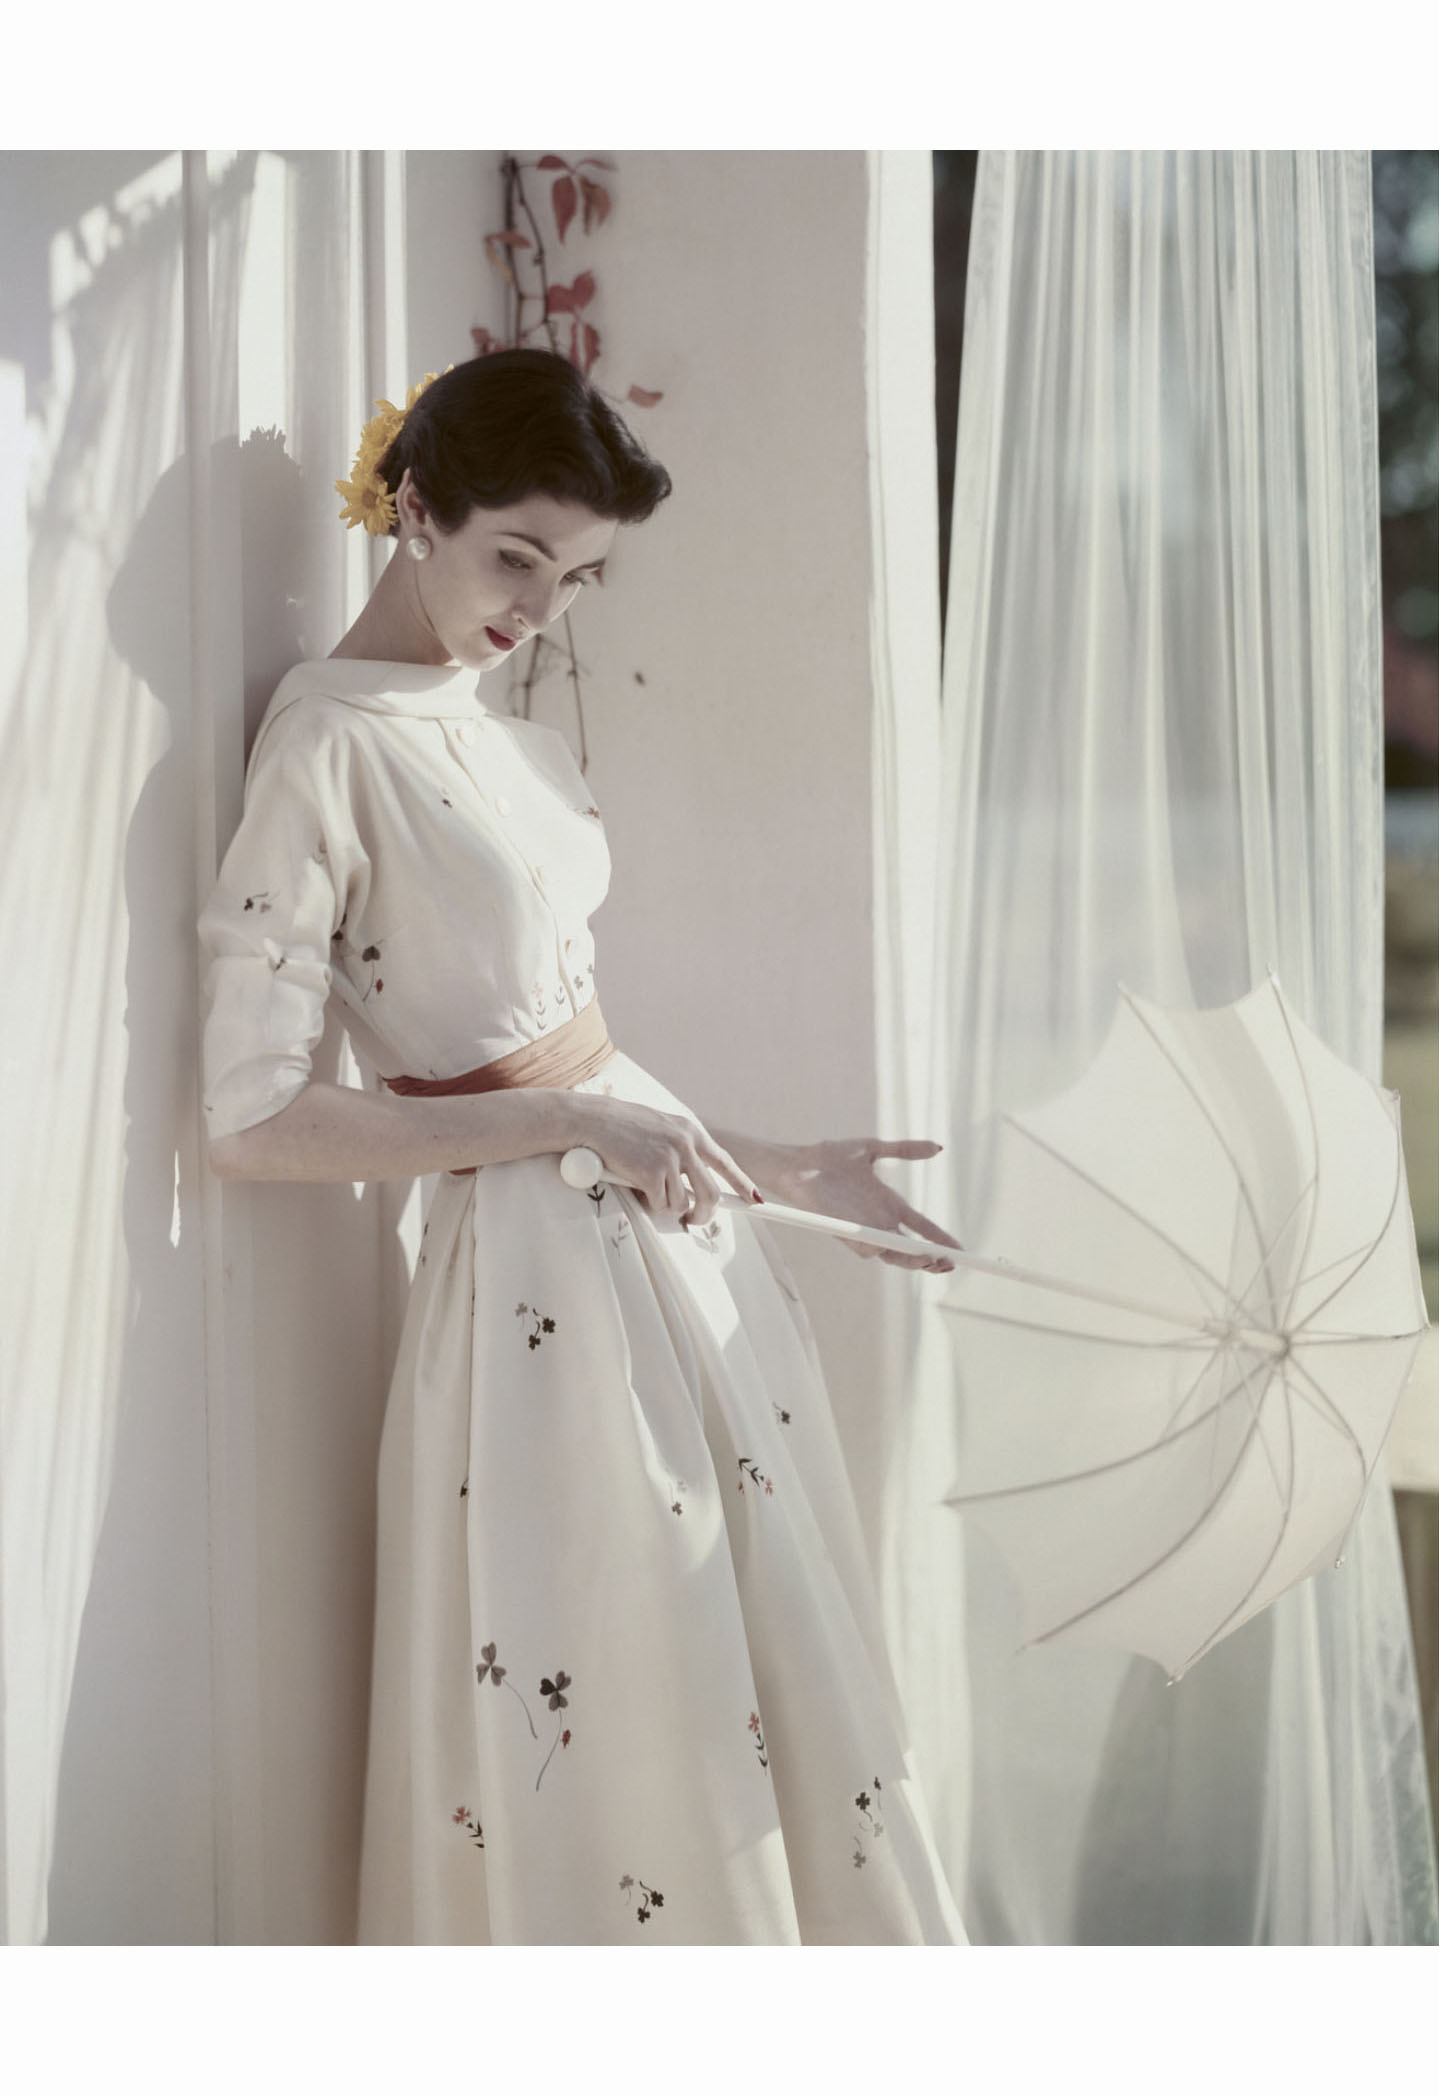 dovima-looking-down-holding-a-parasol-and-wearing-a-flower-printed-collared-dress-with-buttons-down-the-center-front-sashed-at-the-waist-c2a9-horst-p-horst Impressionnant De Parasol Rectangulaire Inclinable